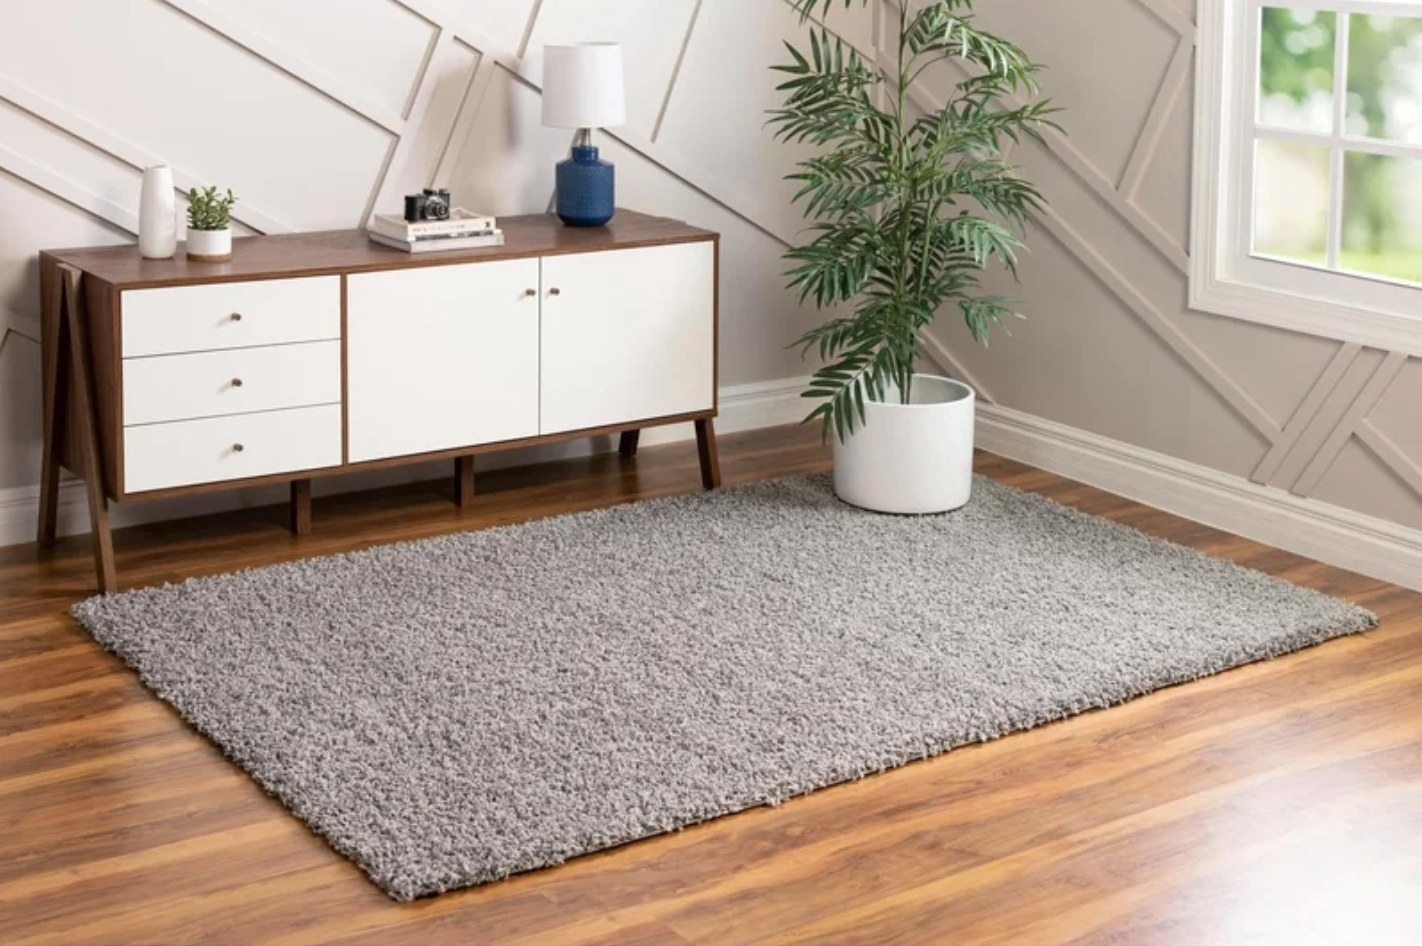 The area rug in cloud gray